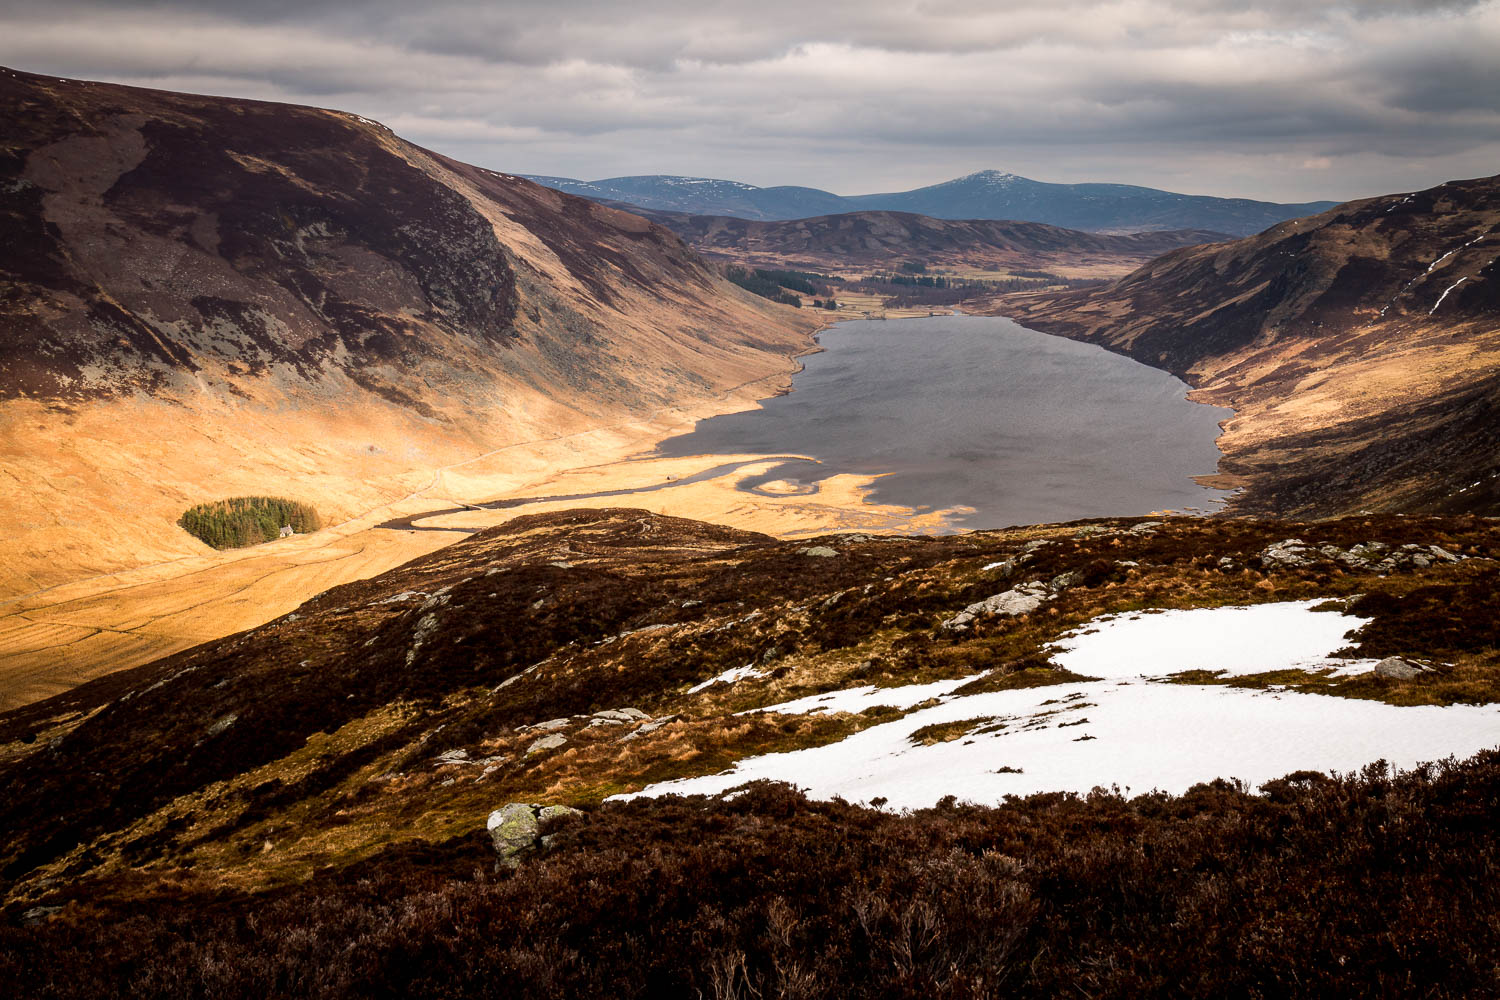 Snow patches on the Shank of Inchgrundle looking toward Loch Lee.